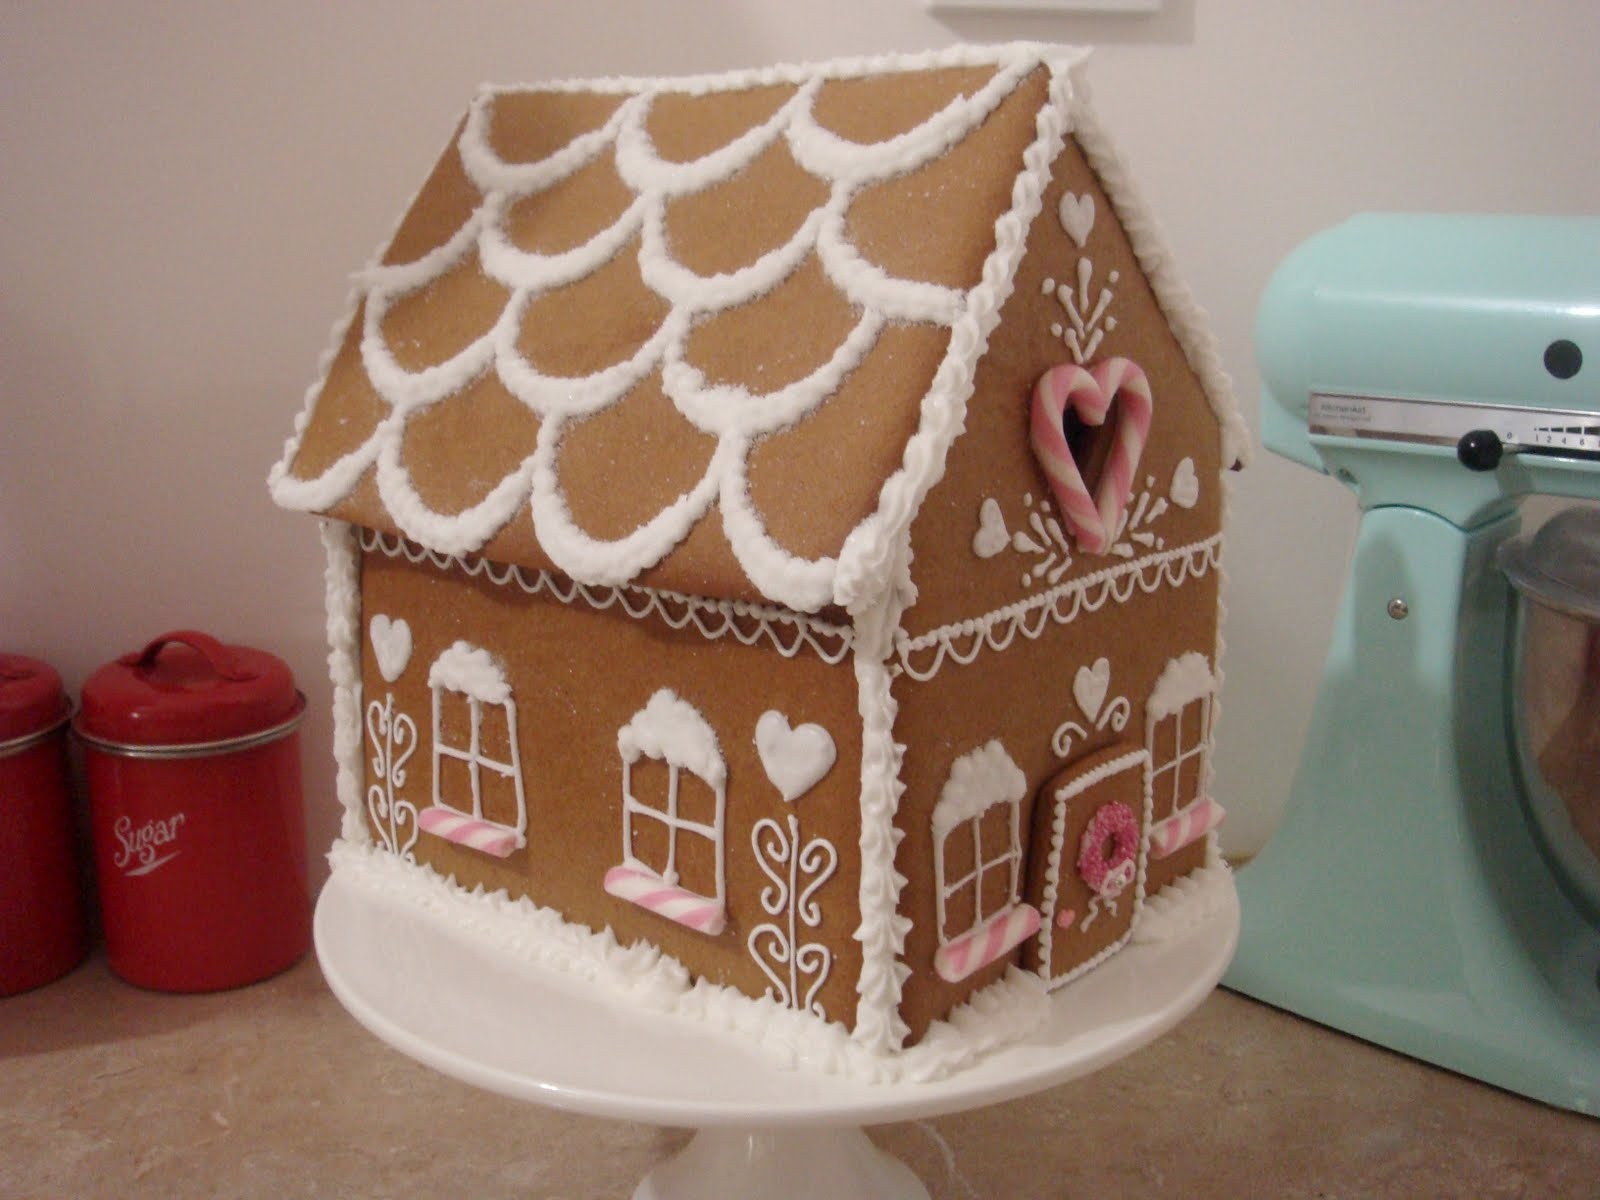 Design For Roof Gingerbread House Html on butterfly roof designs, church roof designs, gingerbread house chimneys, gingerbread house masonry, garden roof designs, birdhouse roof designs, snow roof designs, gingerbread house details, gingerbread house roofing,